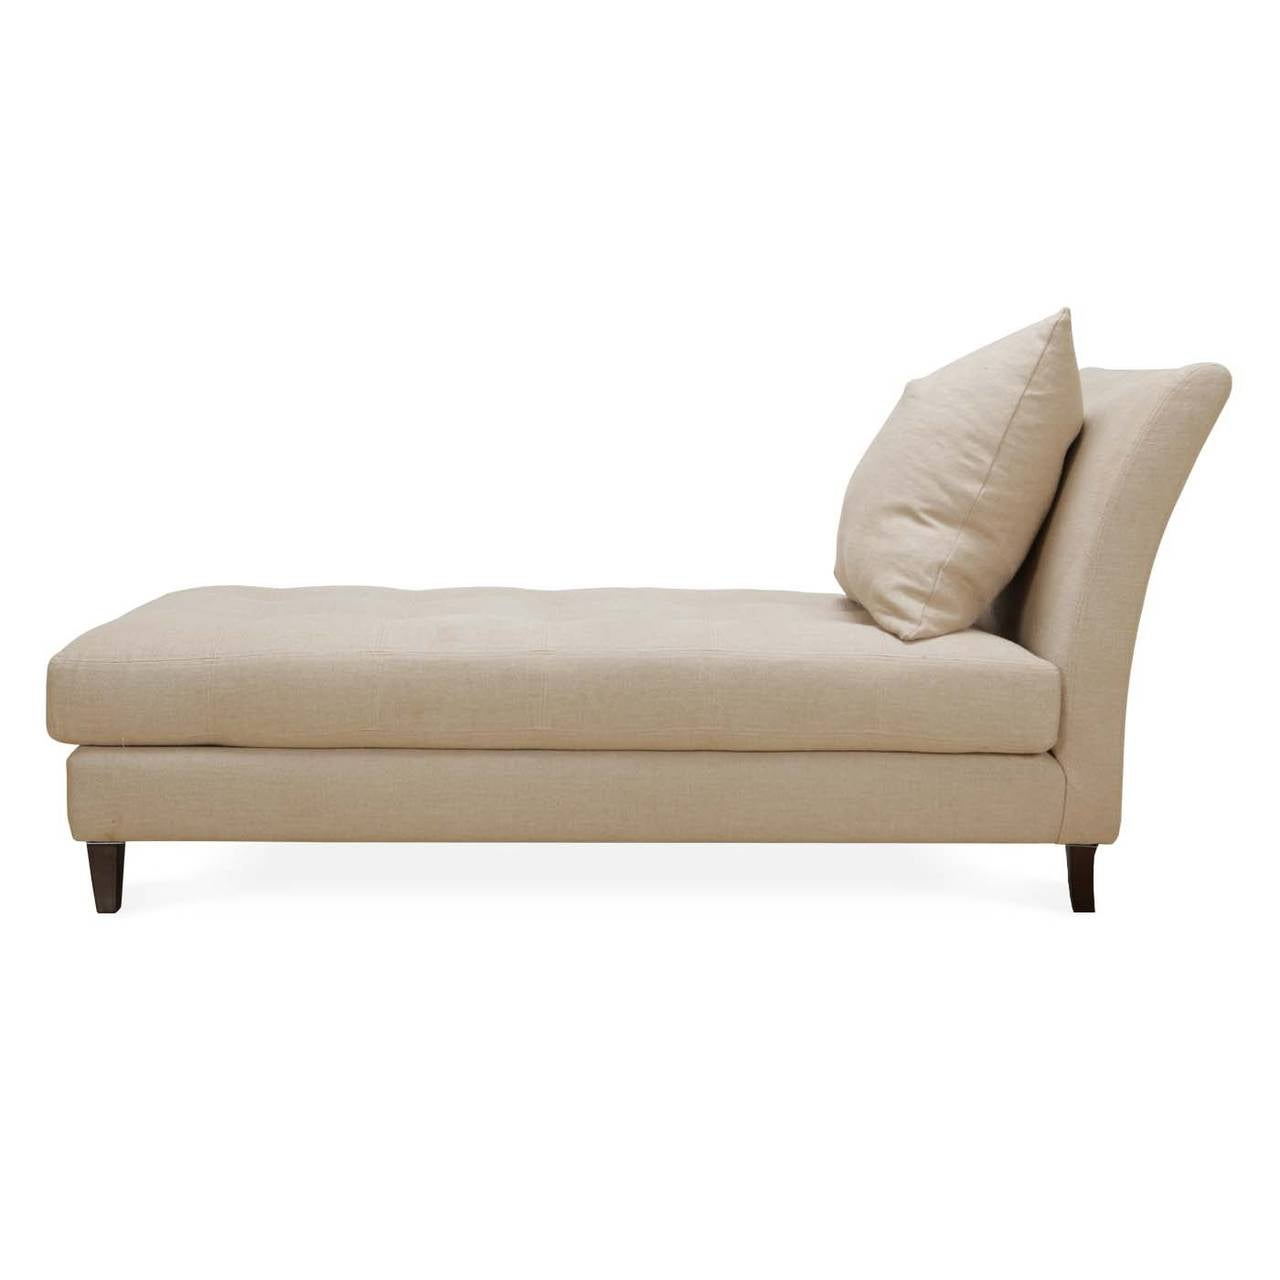 new york chaise longue for sale at 1stdibs